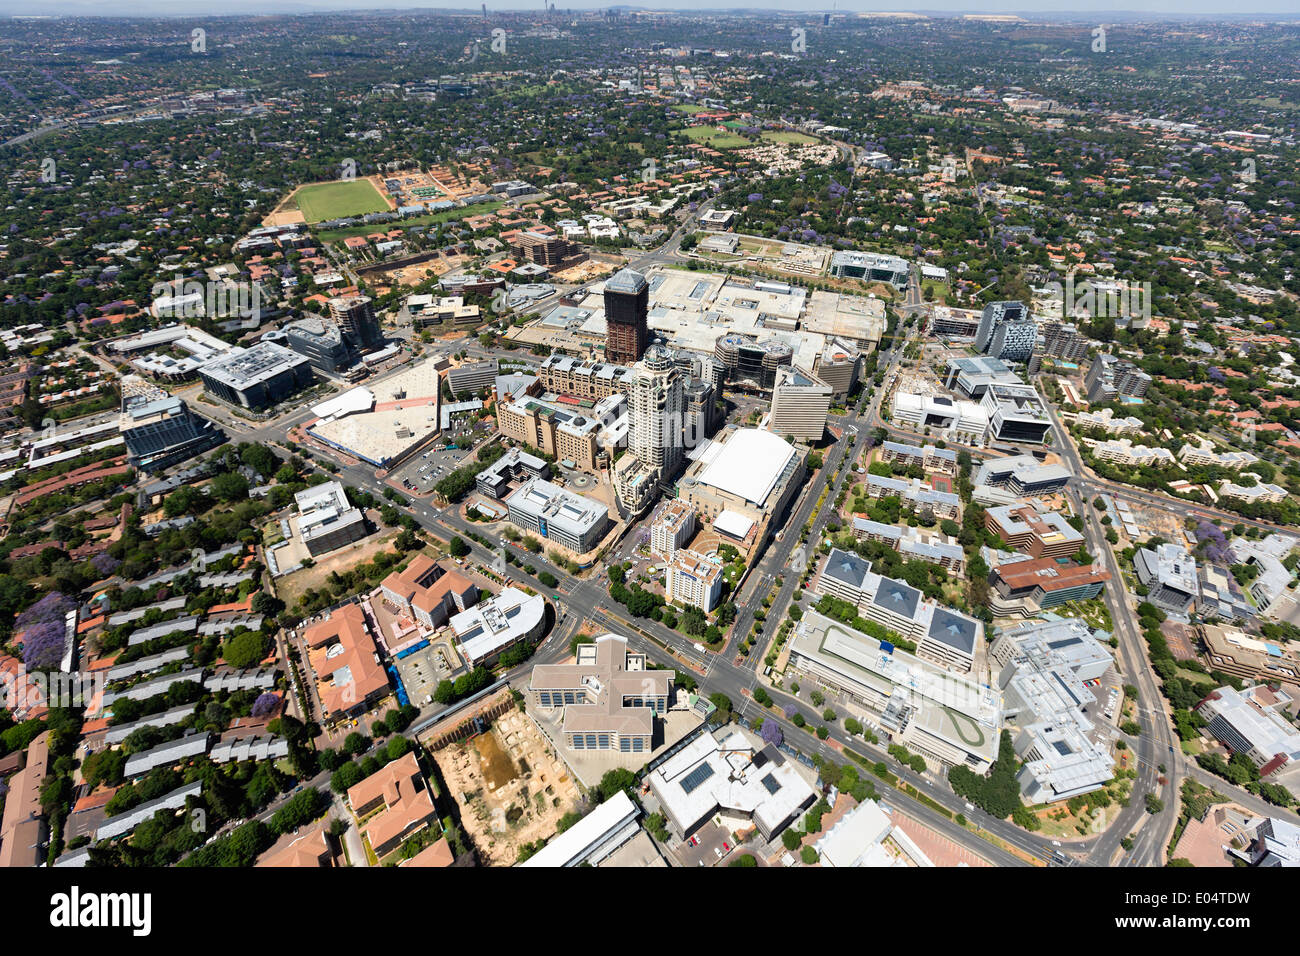 Aerial view of Sandton high-rise buildings, Johannesburg,South Africa. - Stock Image